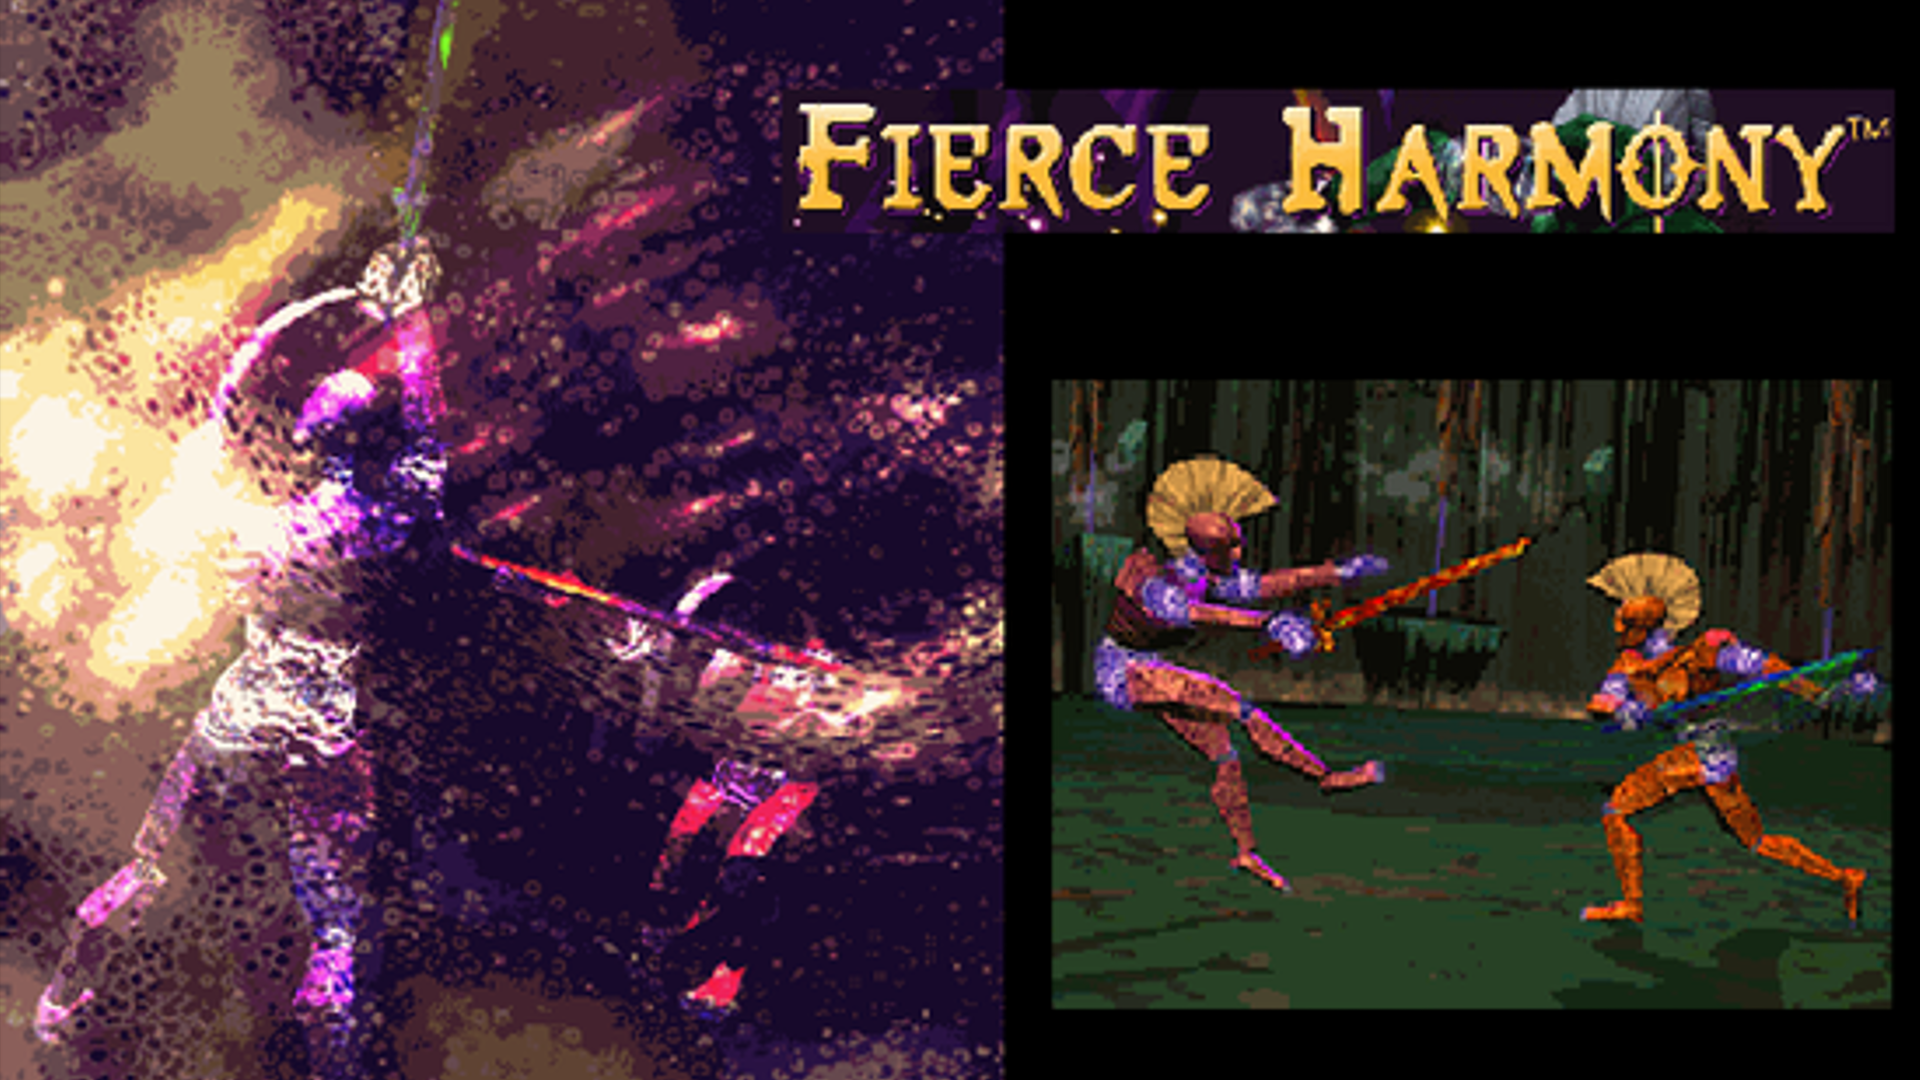 Fierce Harmony Interview with Michael Pierre Price